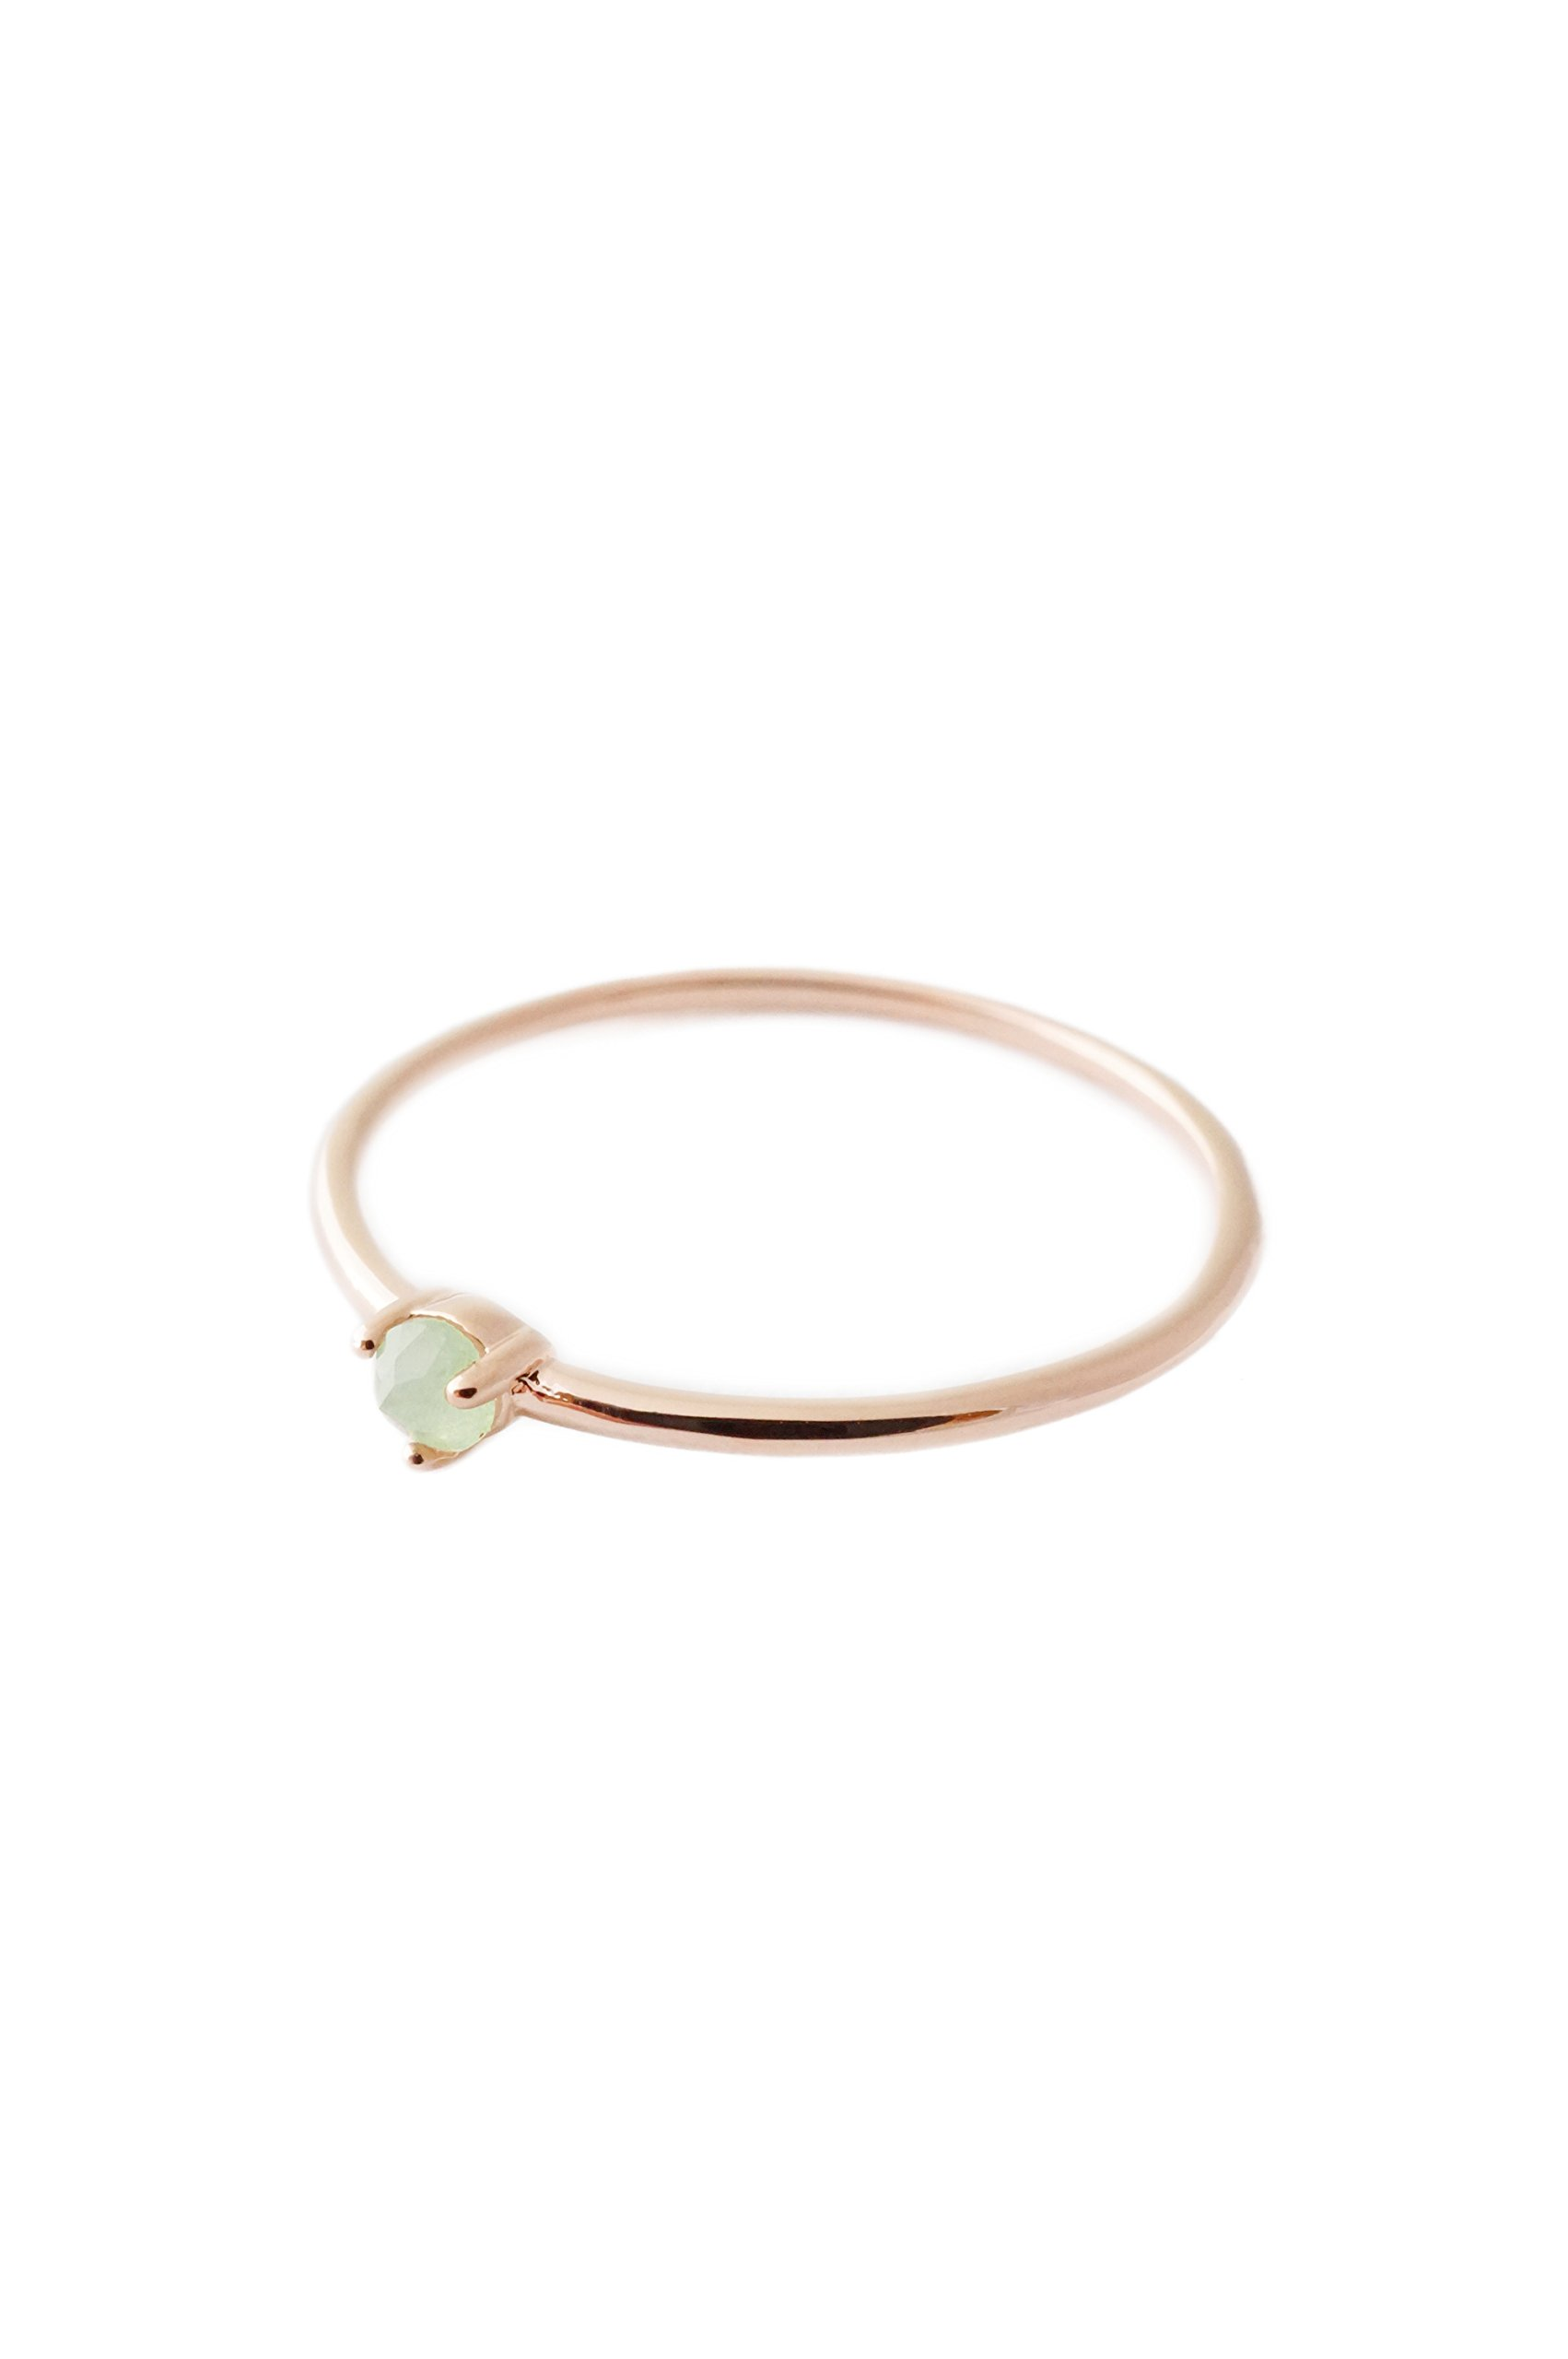 HONEYCAT Green Jade Orb Crystal Ring in 18k Rose Gold Plate | Minimalist, Delicate Jewelry (Rose Gold, 7)